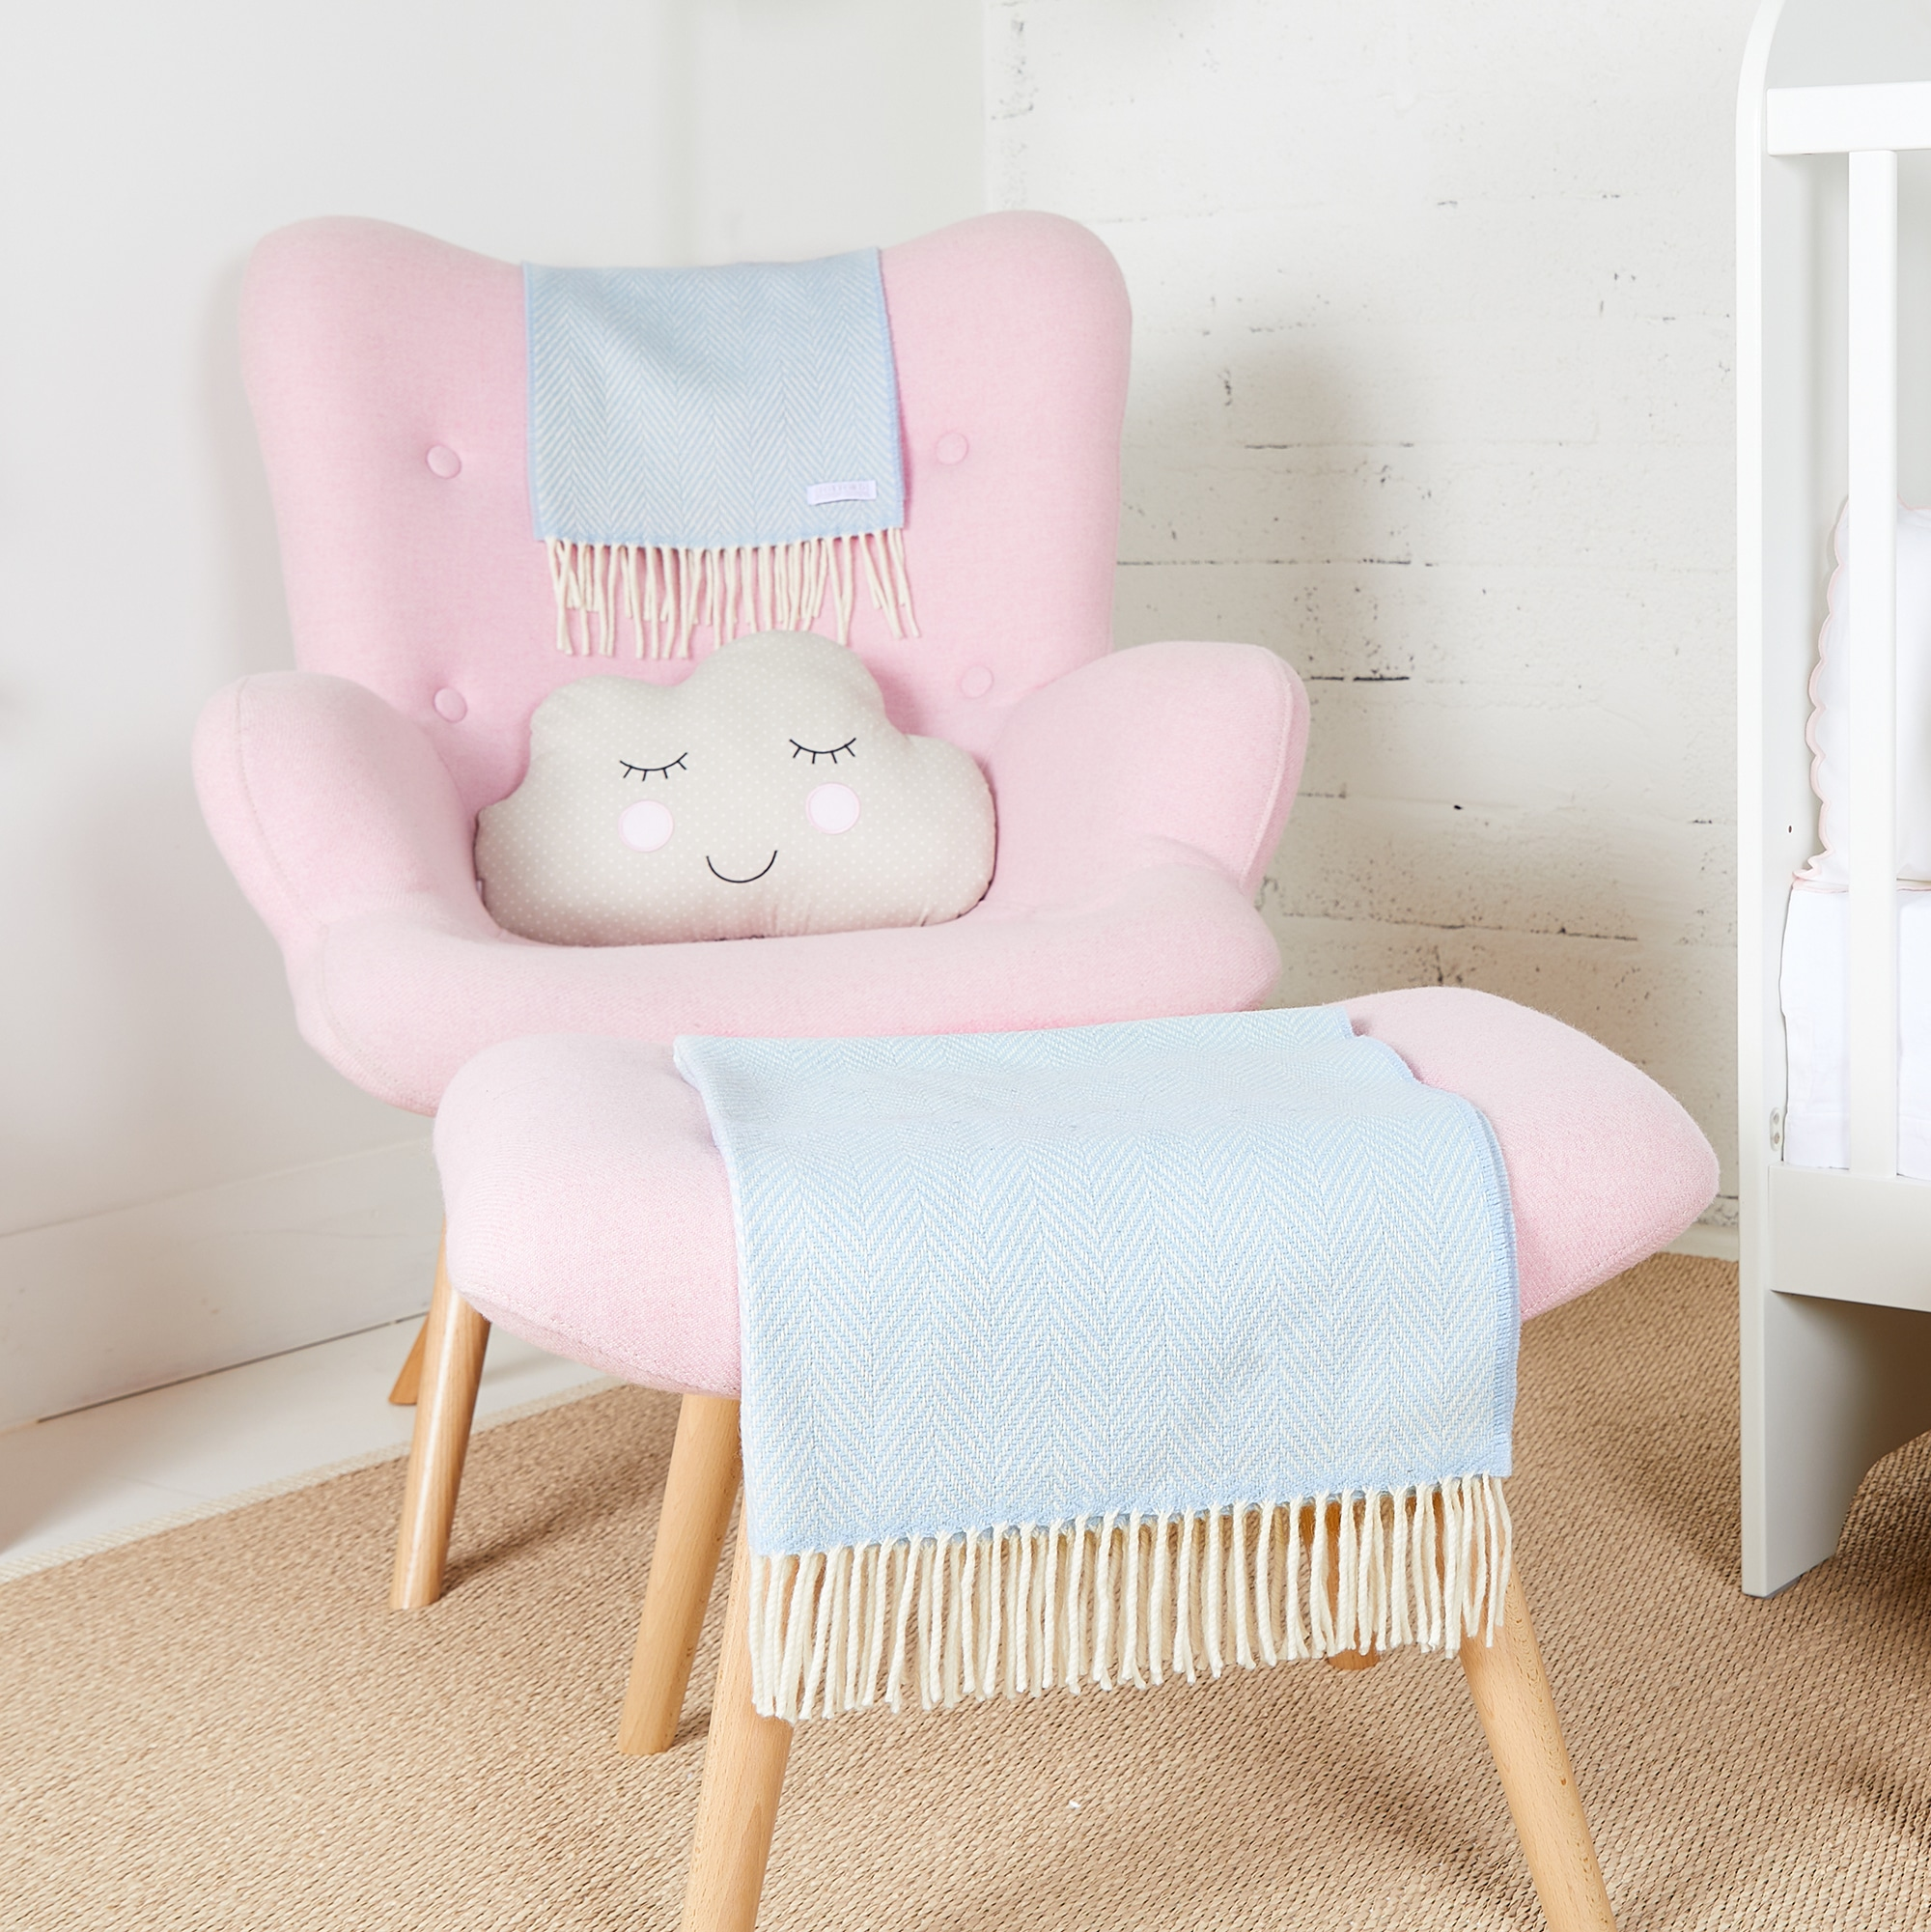 Perma Blue Cashmere Baby Blanket